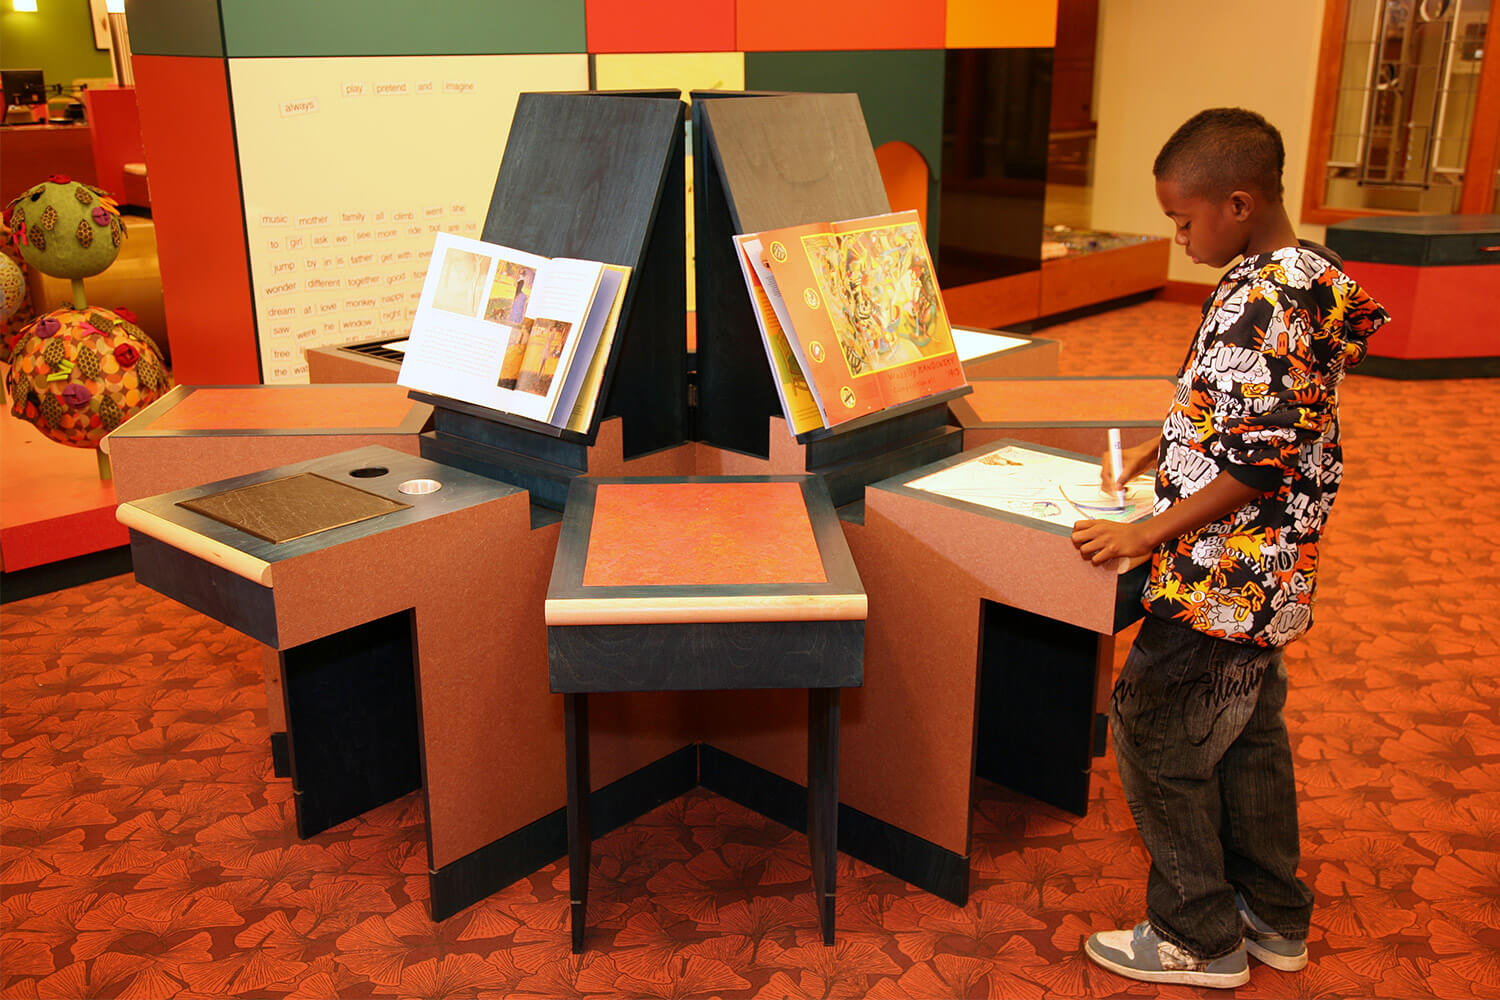 Evanston Public Library Renovation drawing station